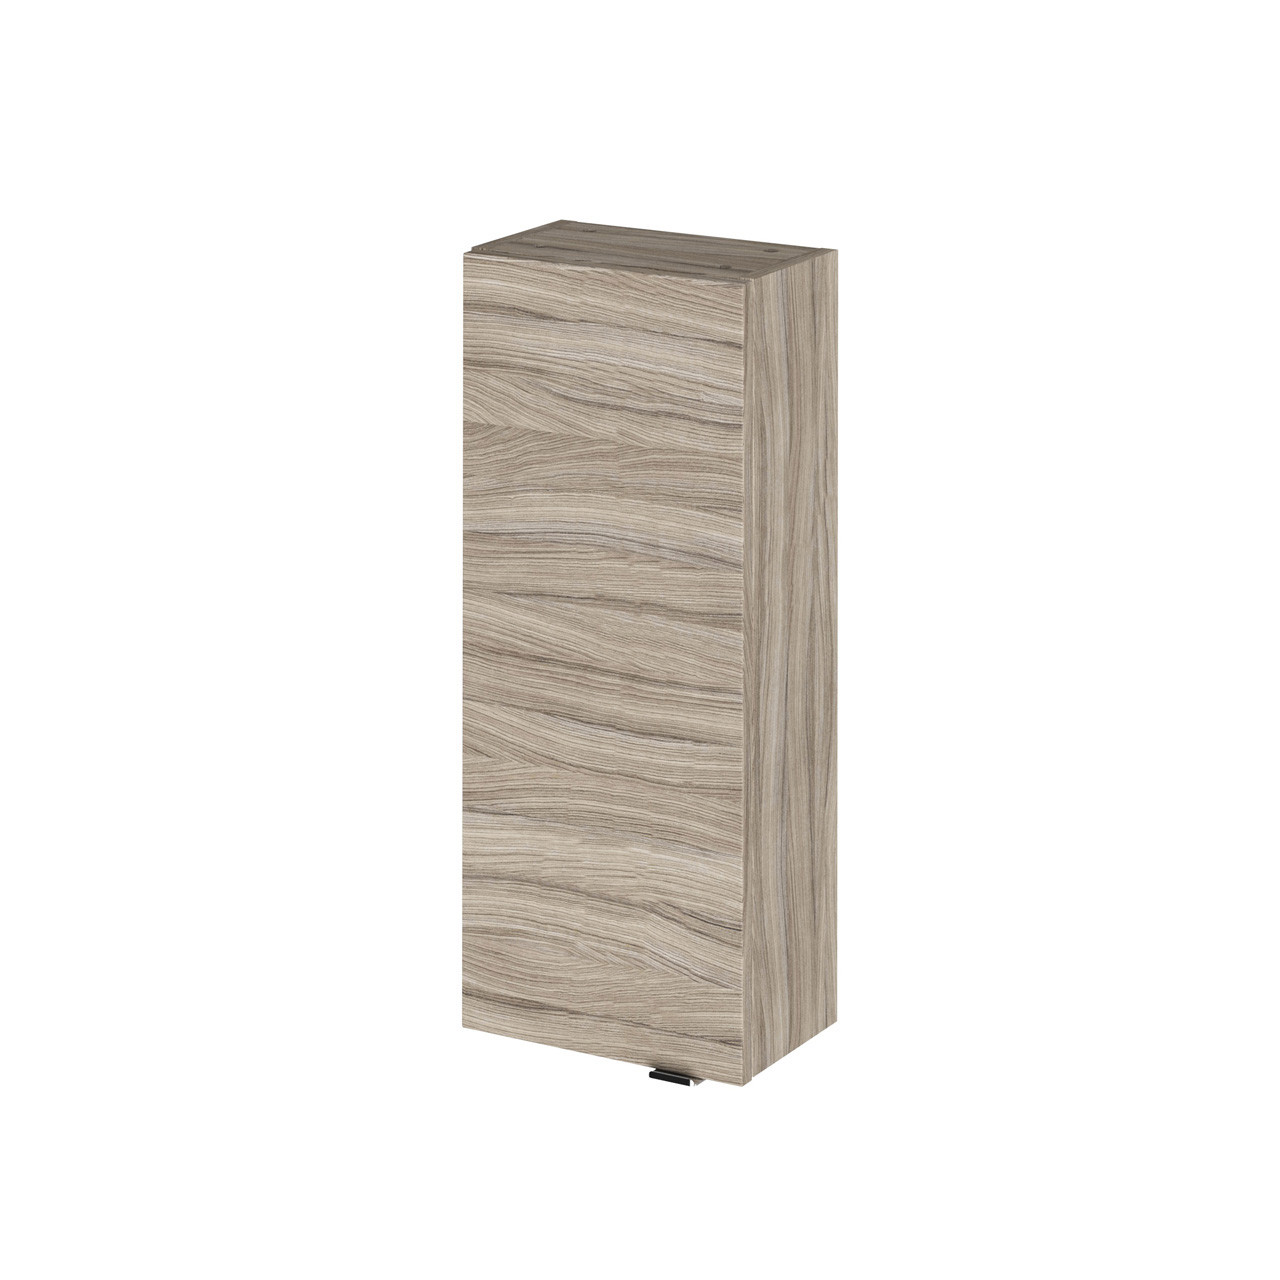 Hudson Reed Driftwood 300mm Wall Unit - OFF251